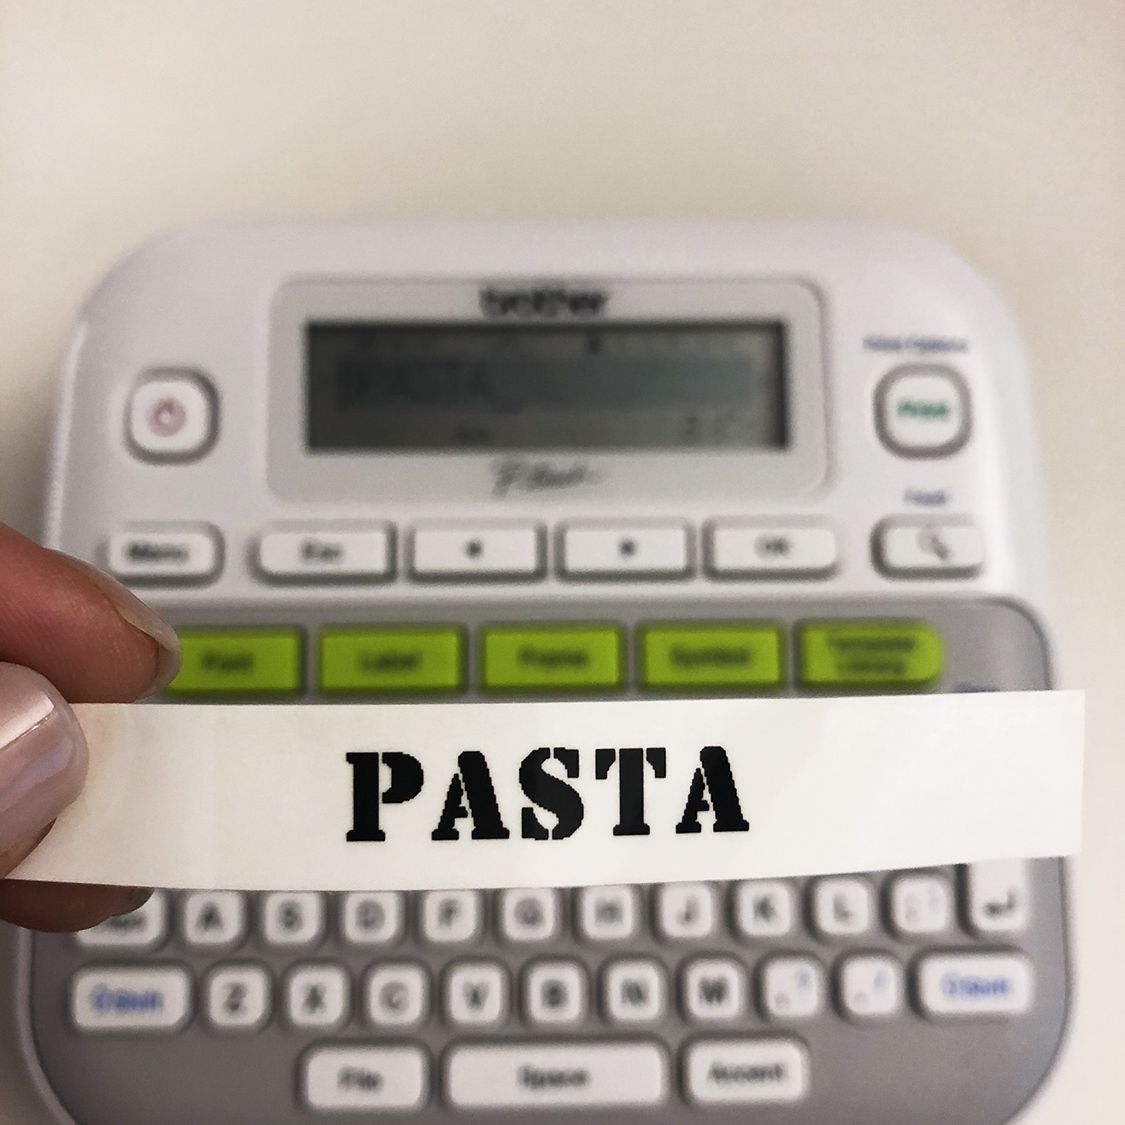 This is a picture of Adaptable Office Max Label Maker